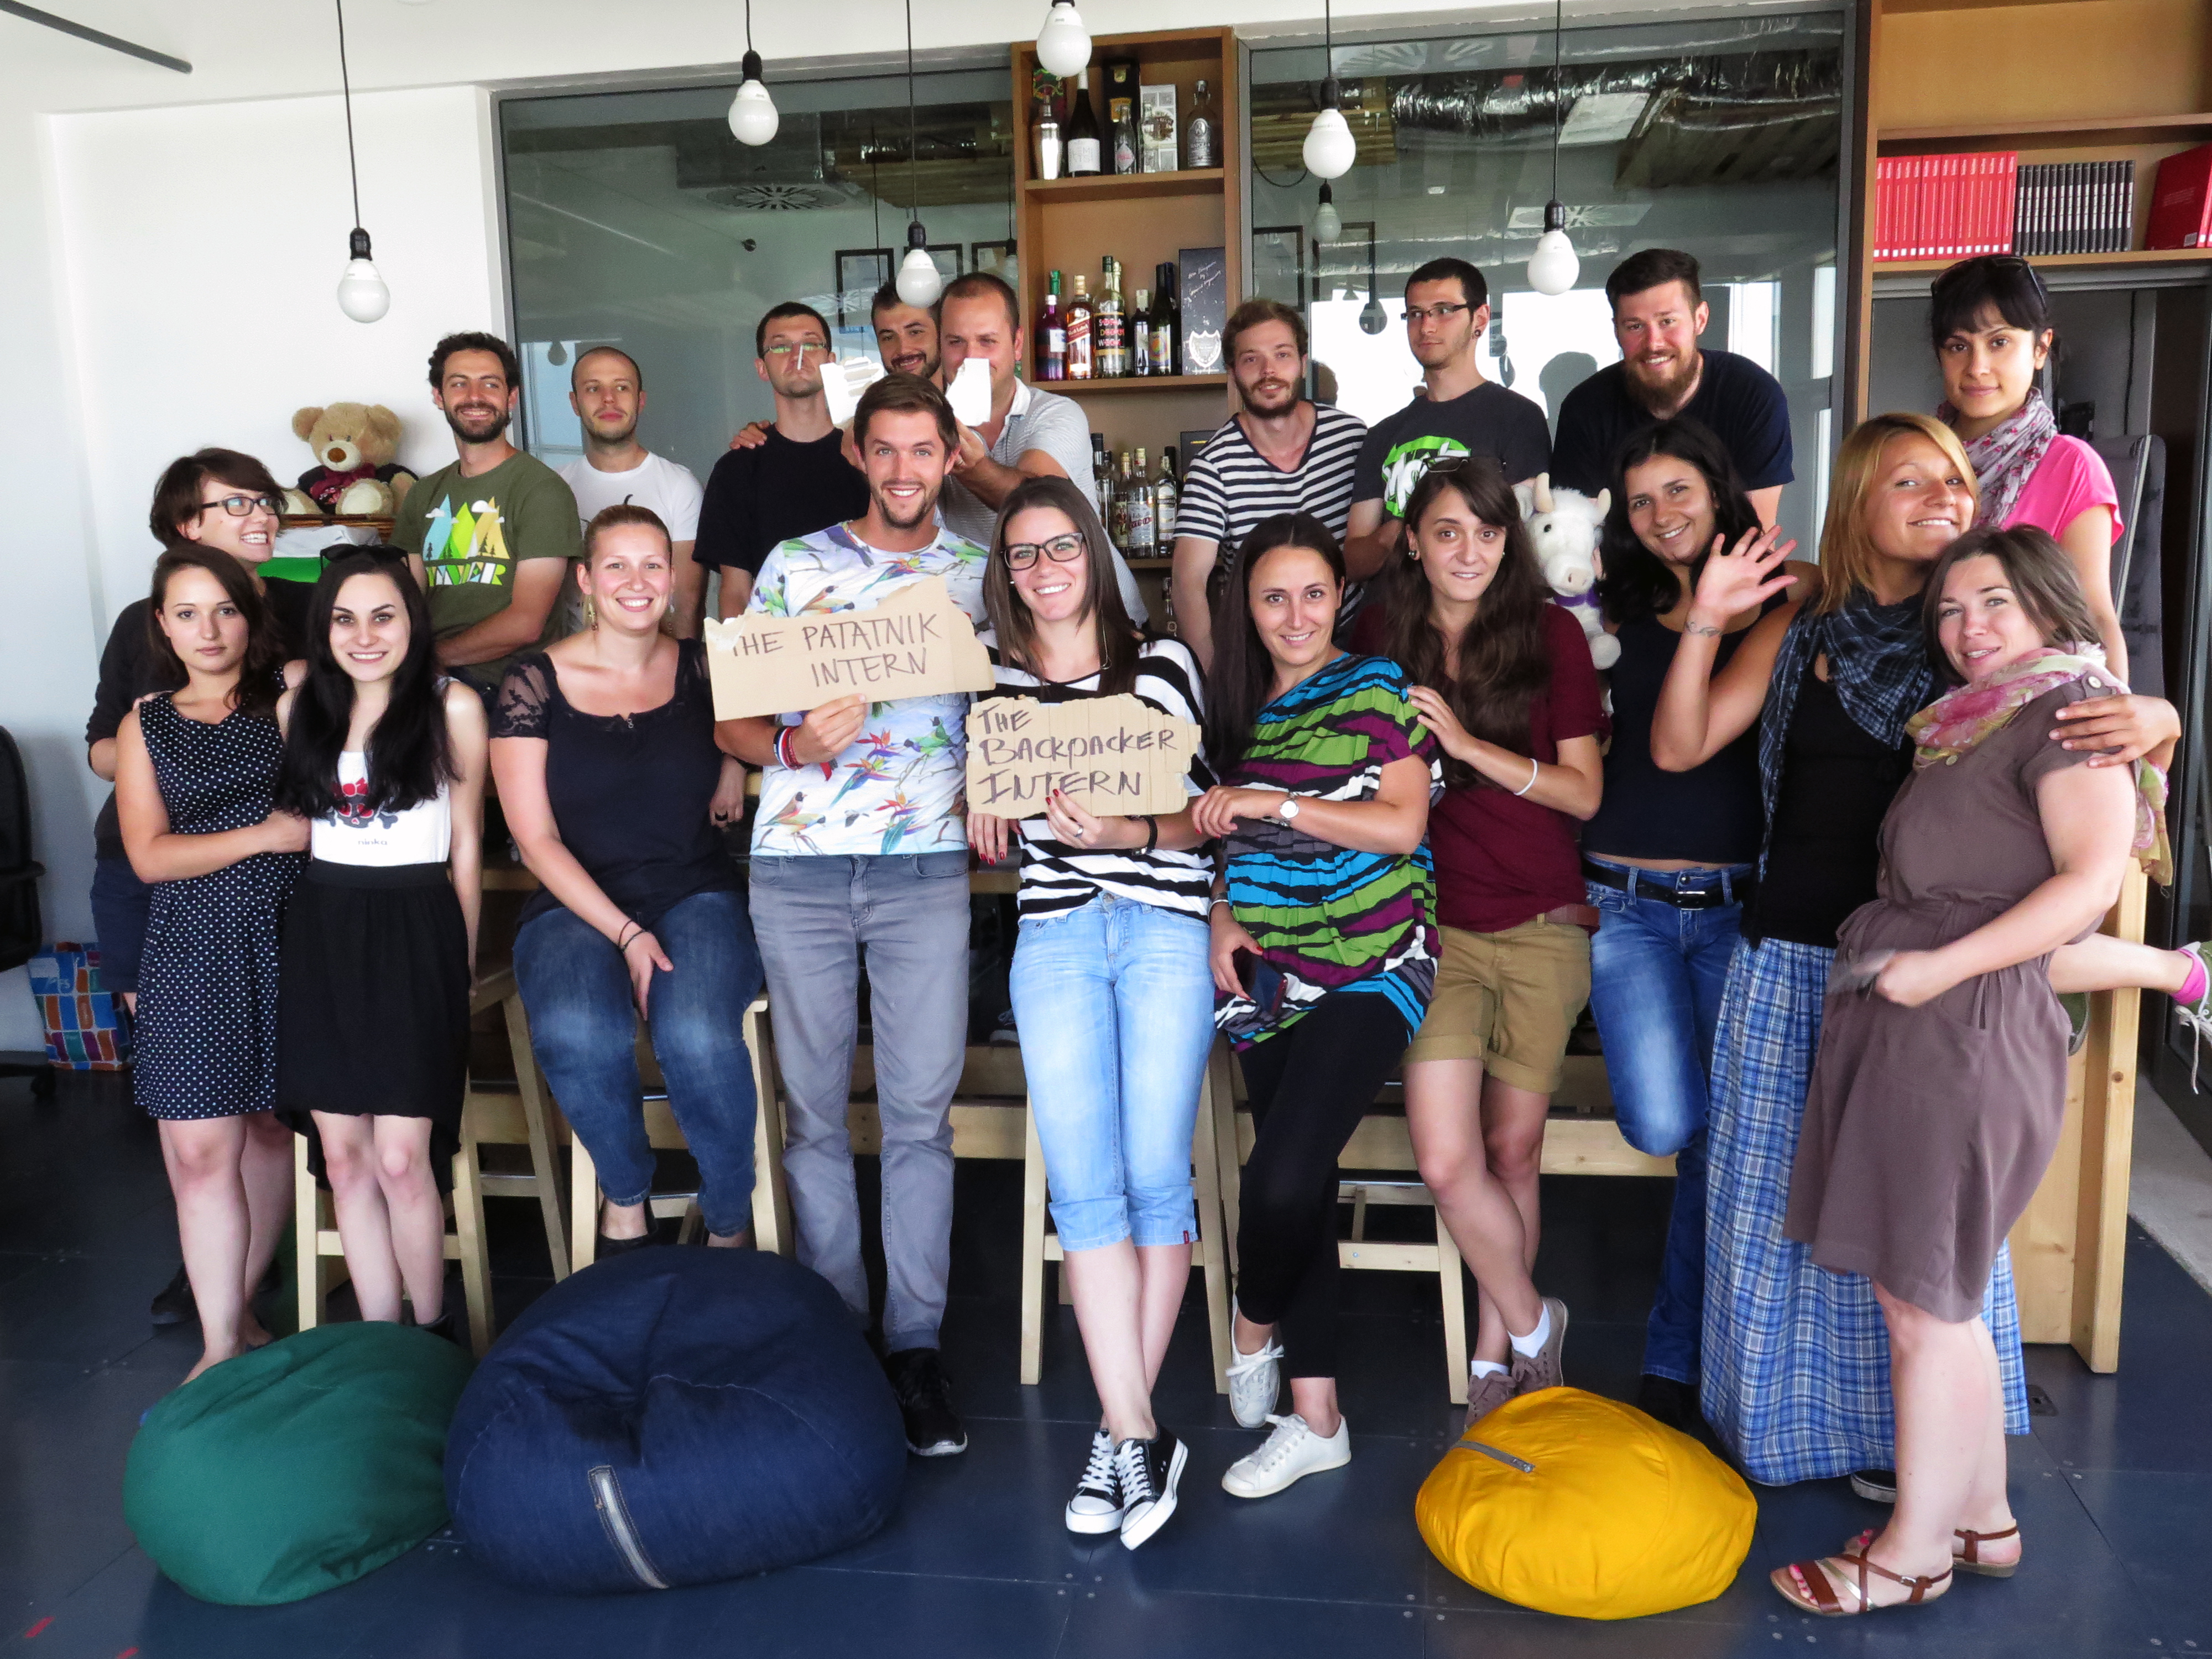 The Backpacker Intern + Saatchi Saatchi Bulgaria